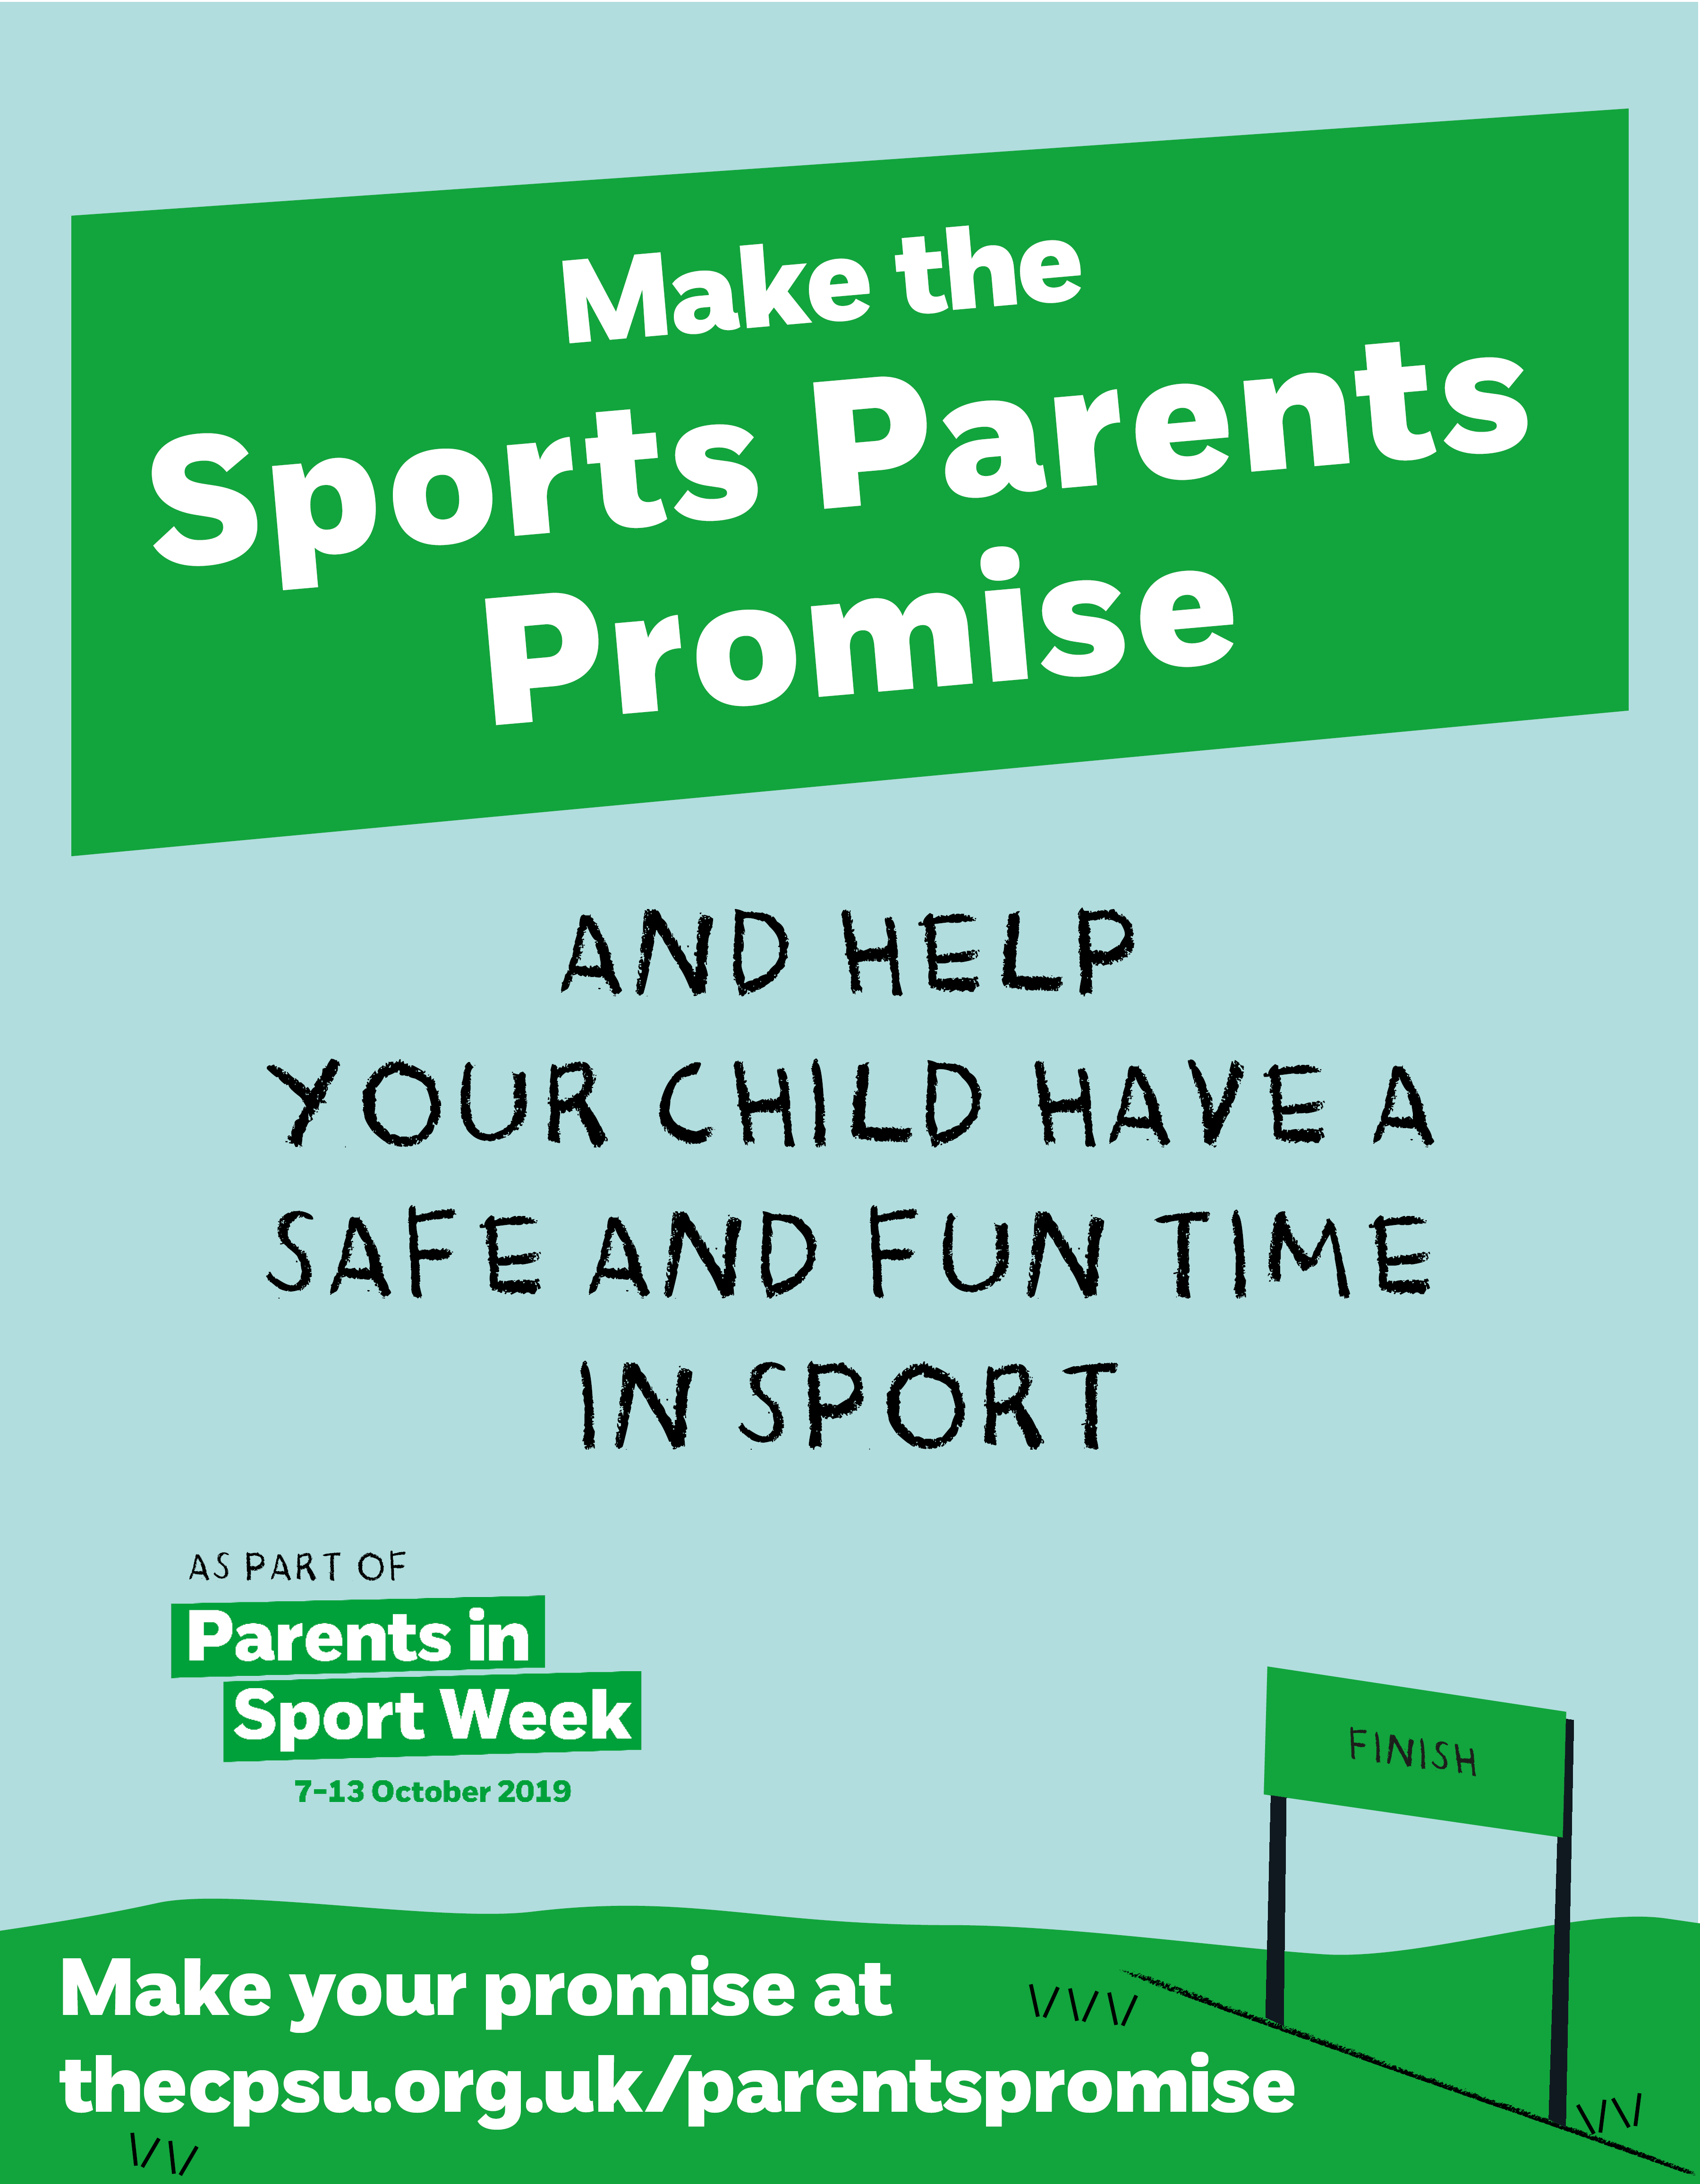 CPSU Launches the Sports Parents Promise